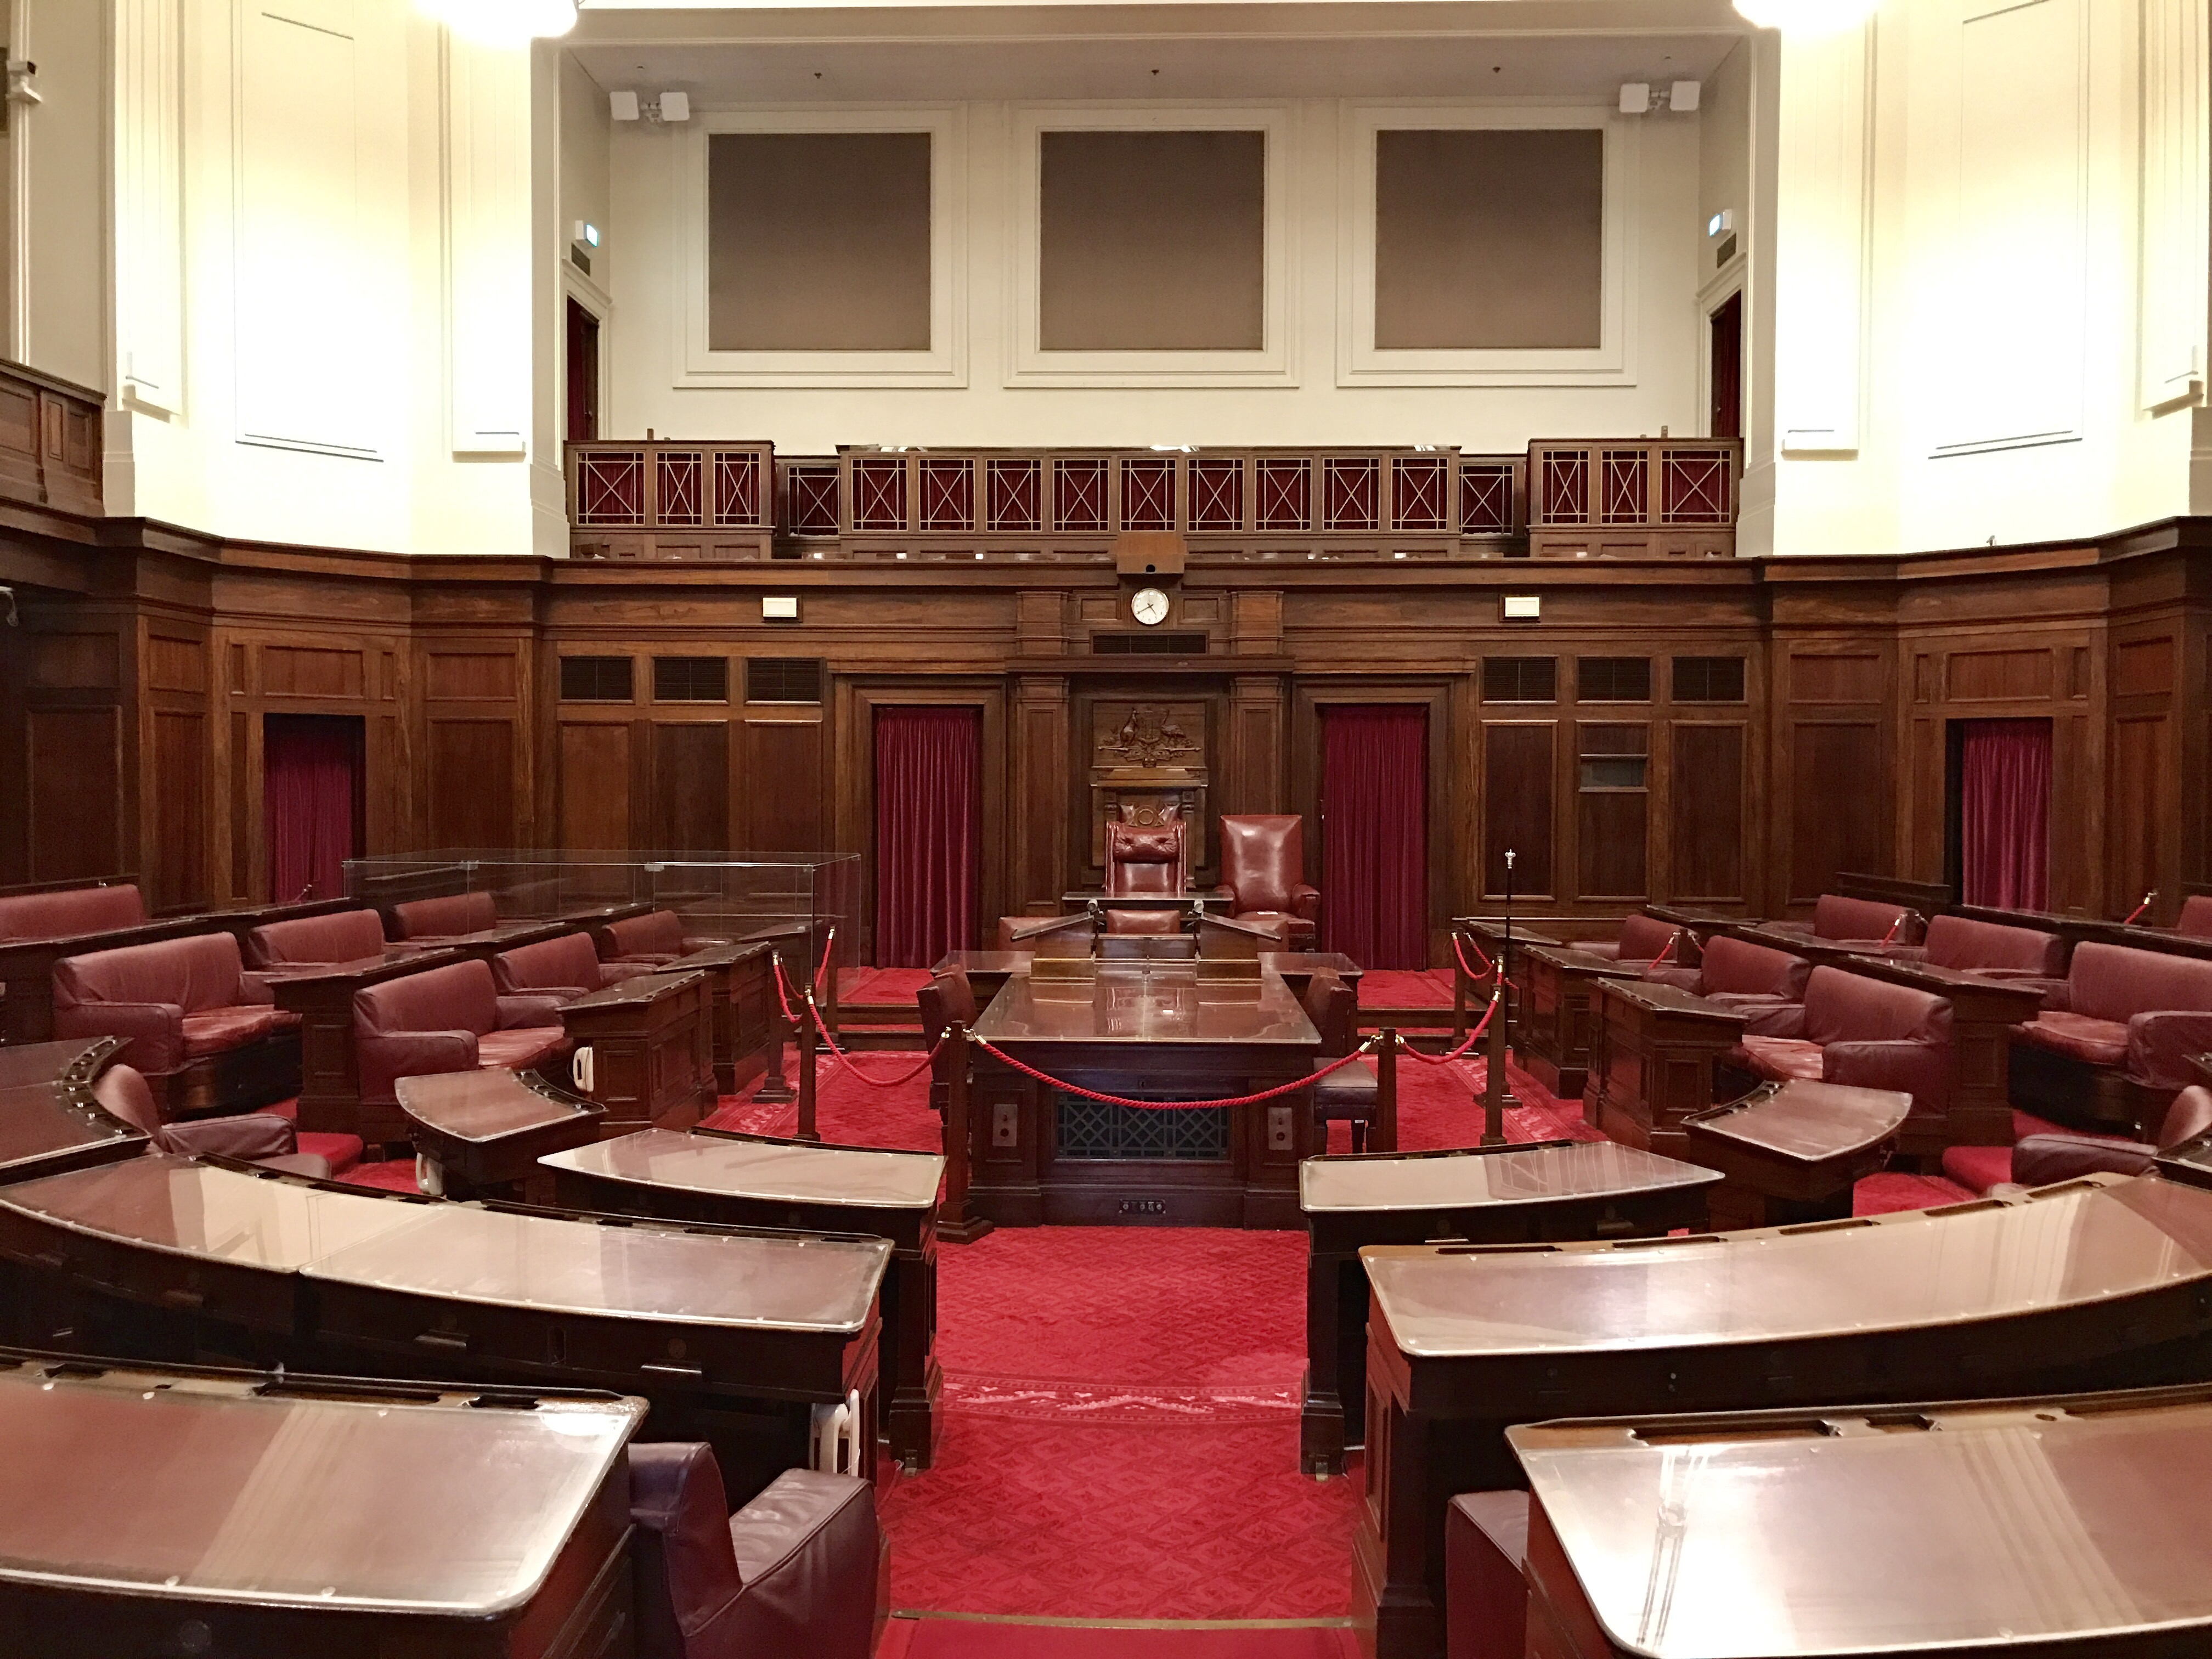 Australian Senate chamber%2C Old Parliament House%2C Canberra - 38+ Australian Parliament House Canberra Pictures  Pictures